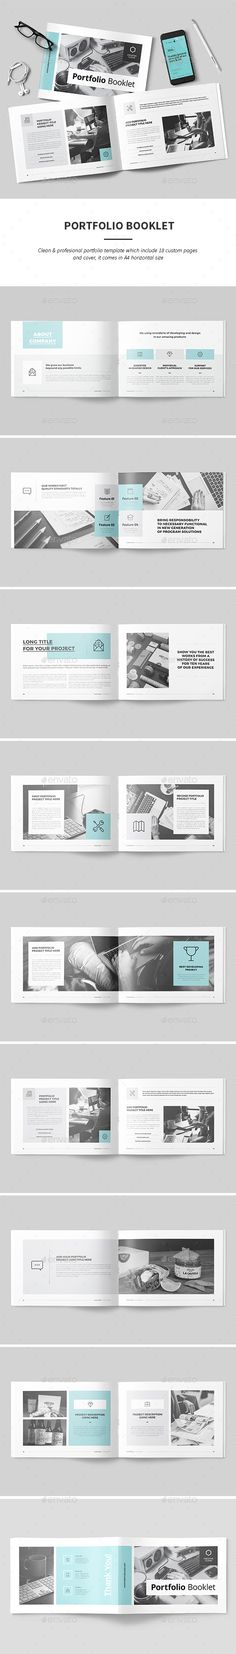 Portfolio — InDesign INDD #210x297 #portfolio • Download ➝ https://graphicriver.net/item/portfolio/18850600?ref=pxcr